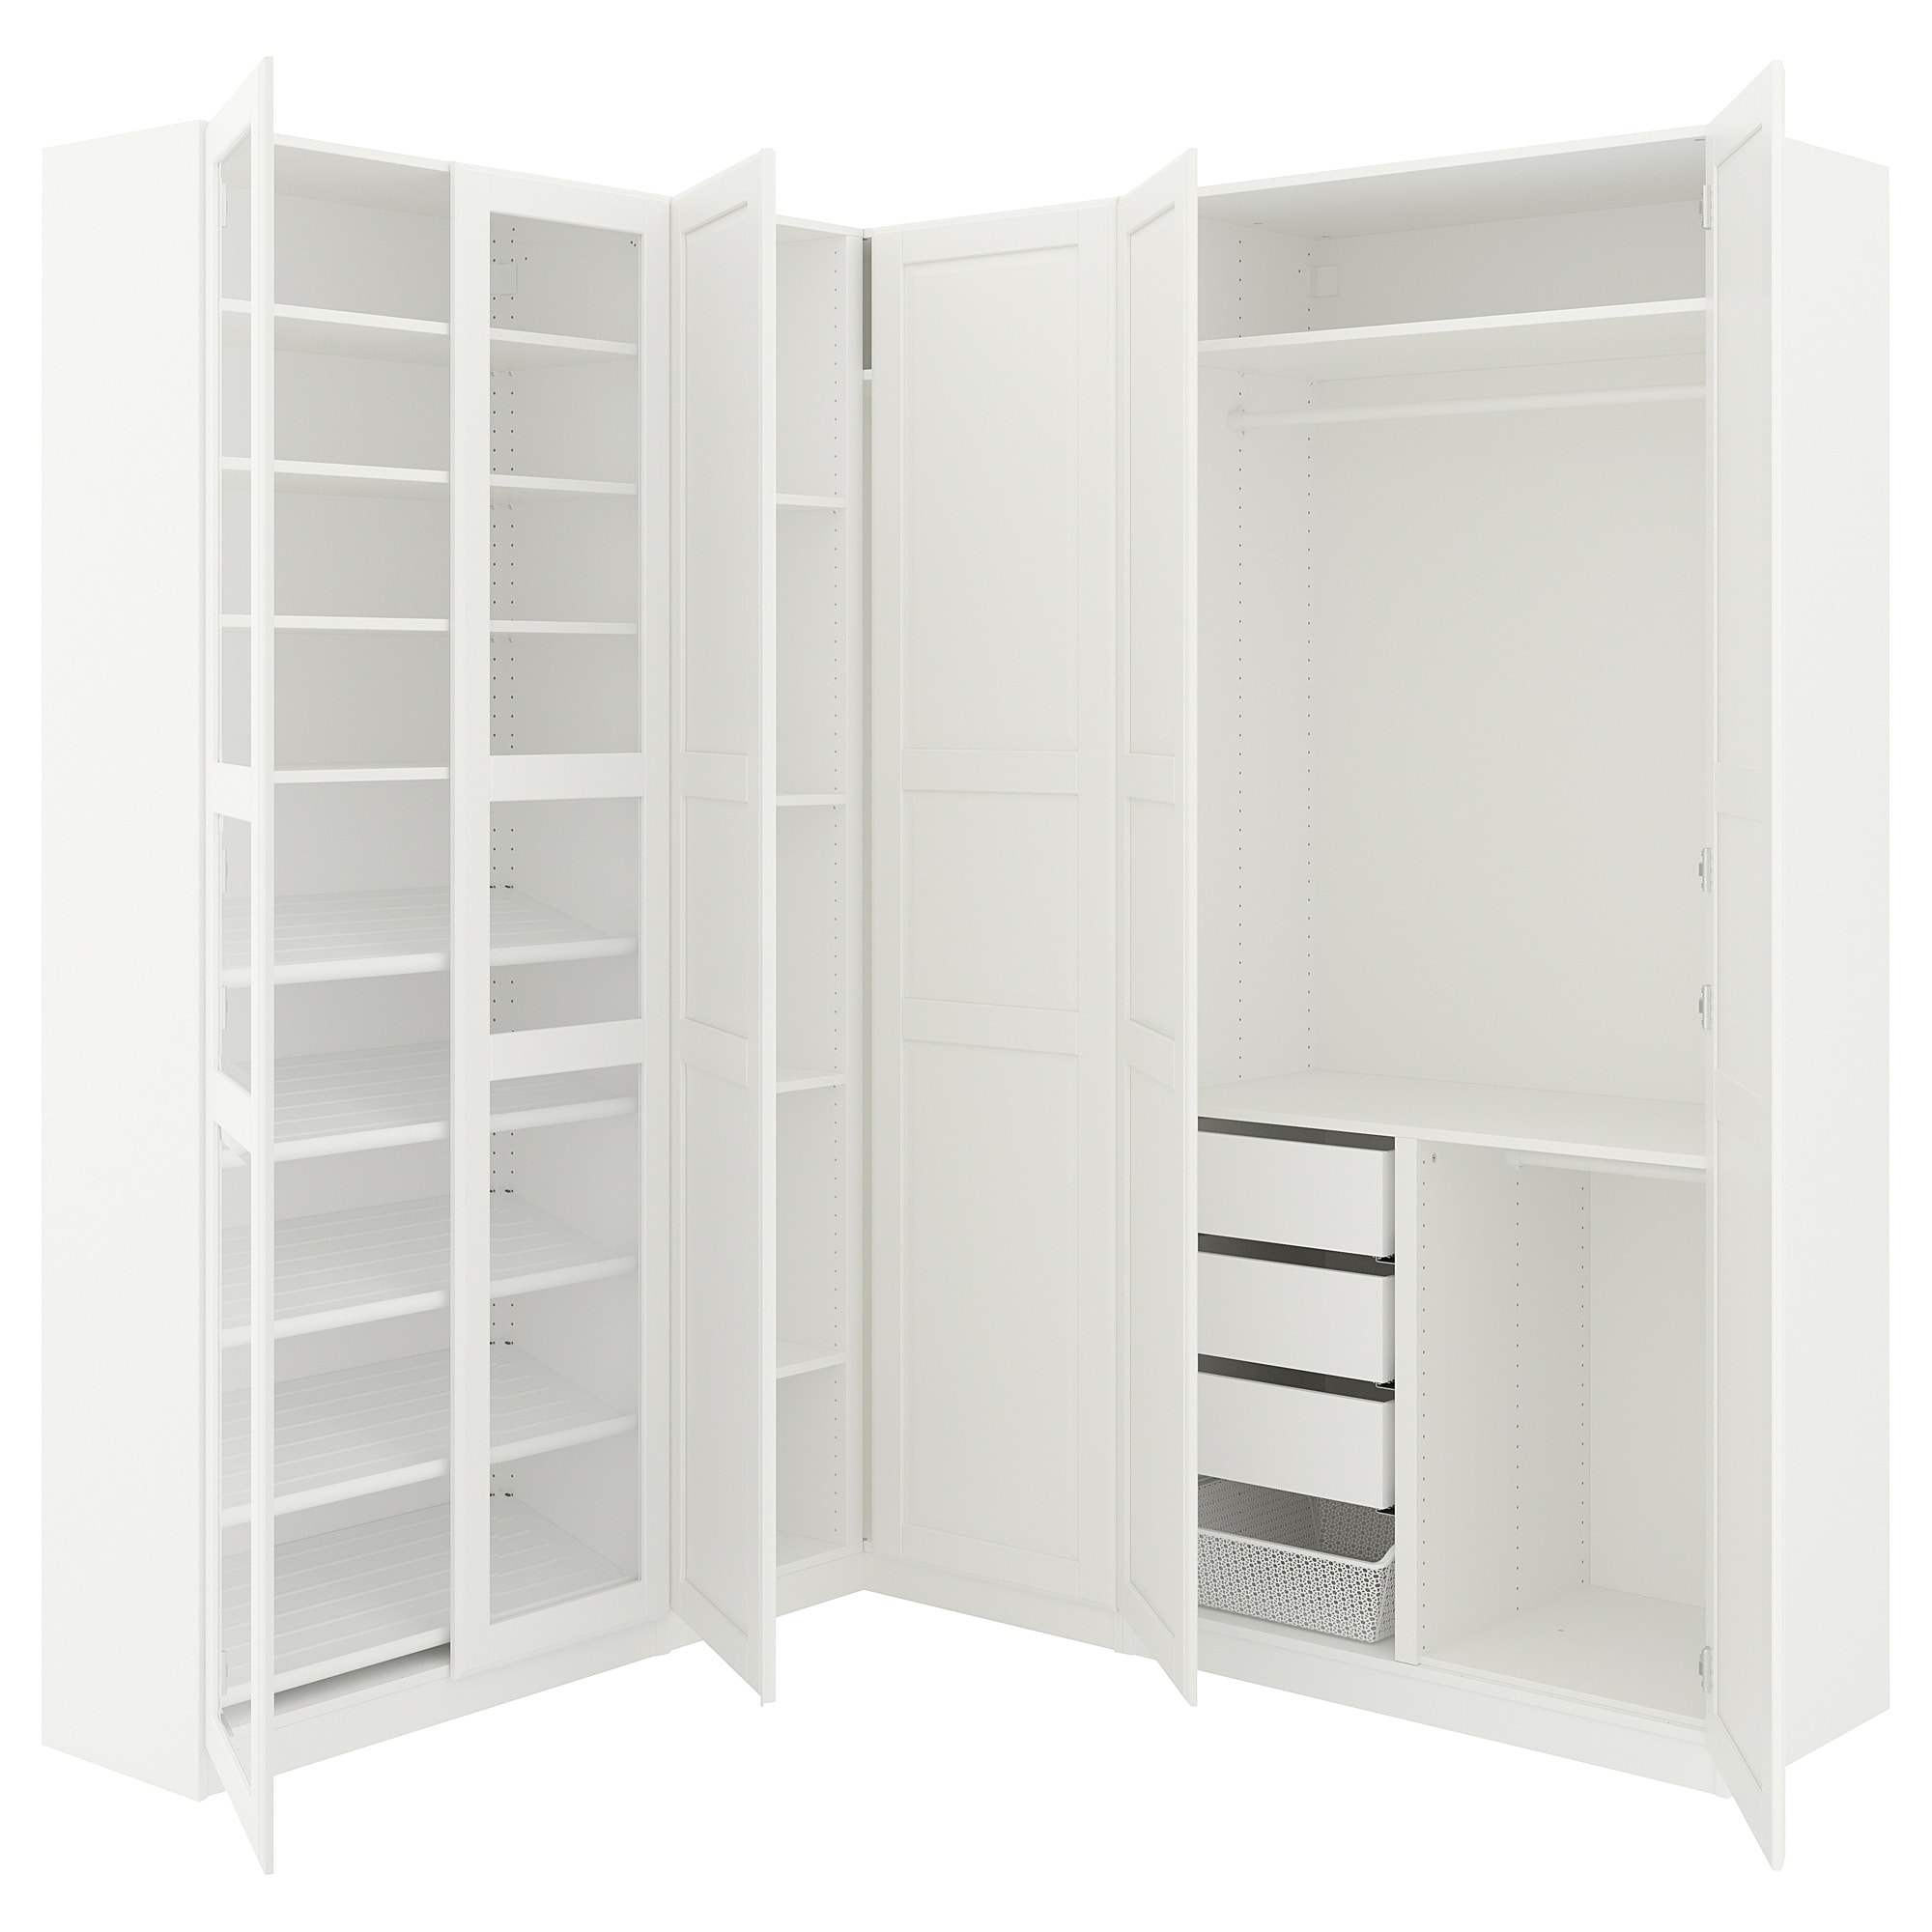 Armoire D Angle Dressing pax armoire d'angle - blanc tyssedal, tyssedal verre 210